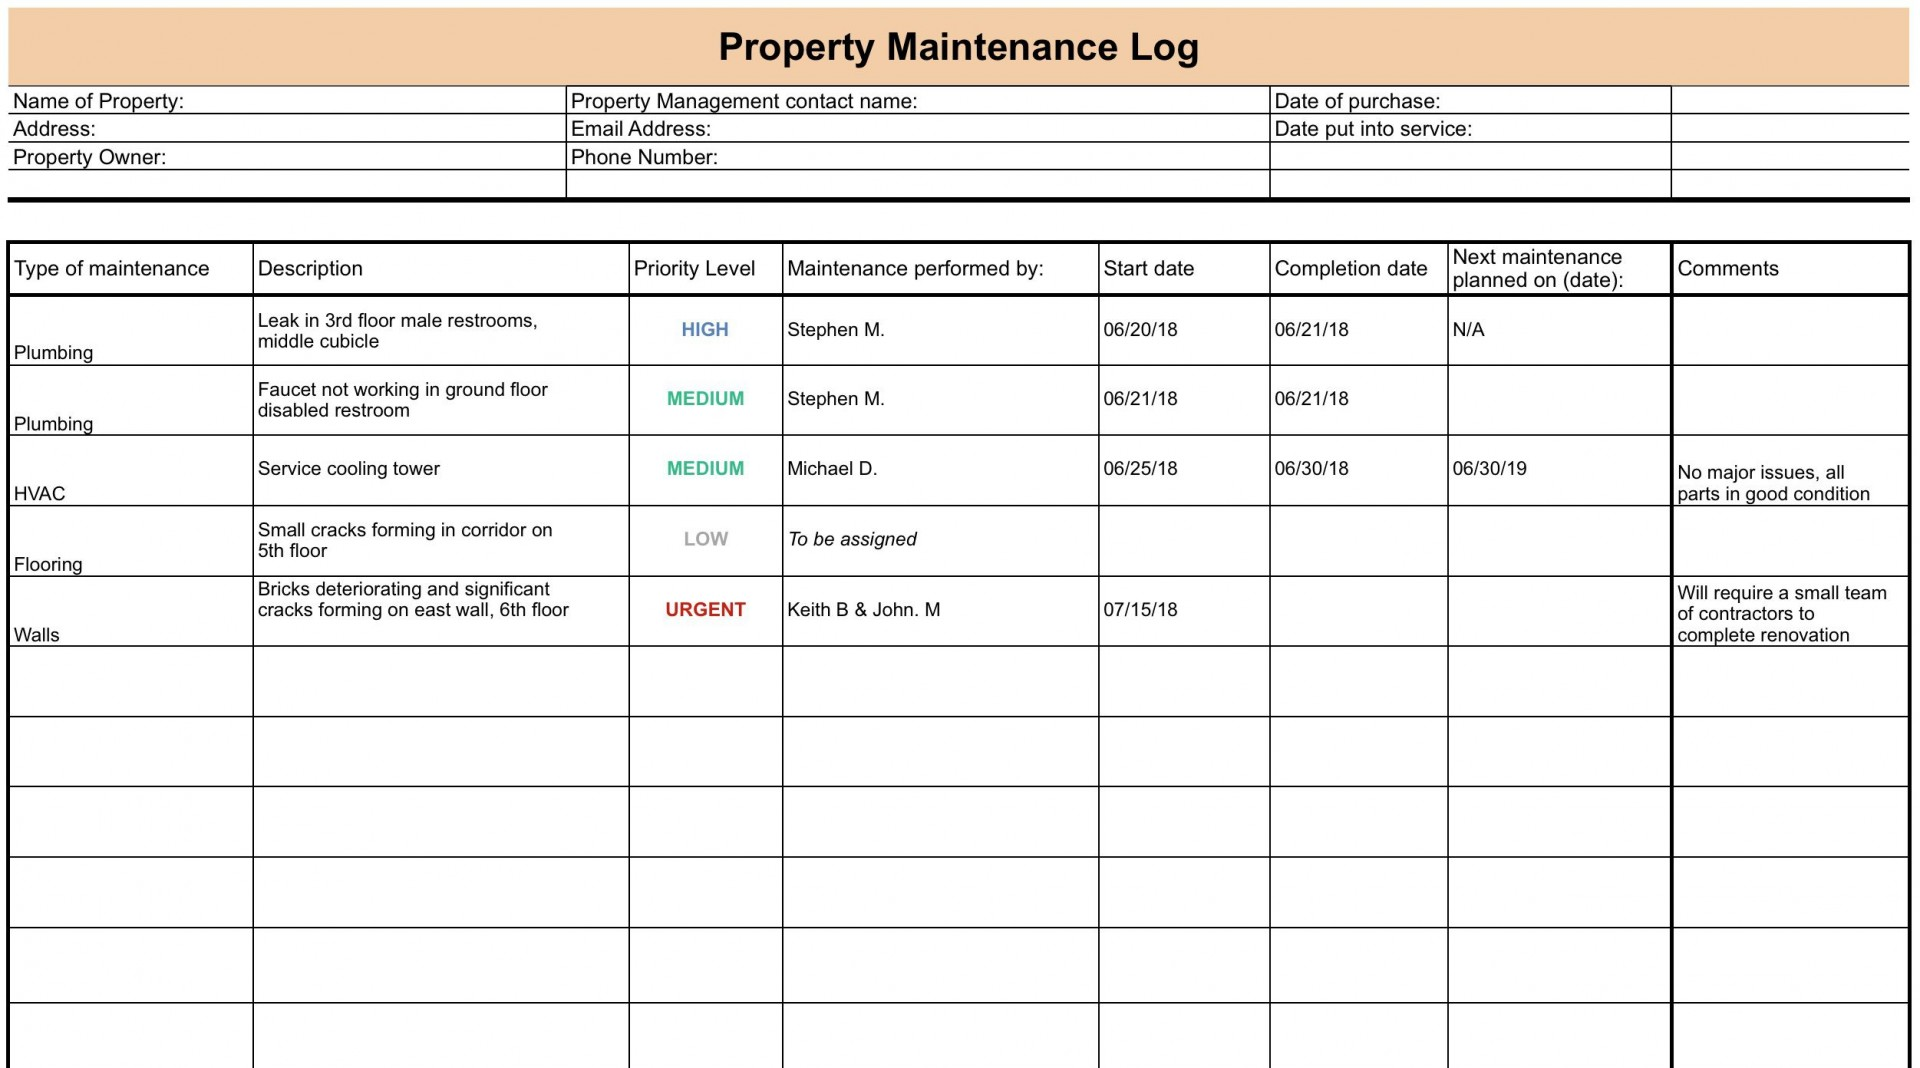 007 Incredible Property Management Maintenance Checklist Template High Def  Free1920